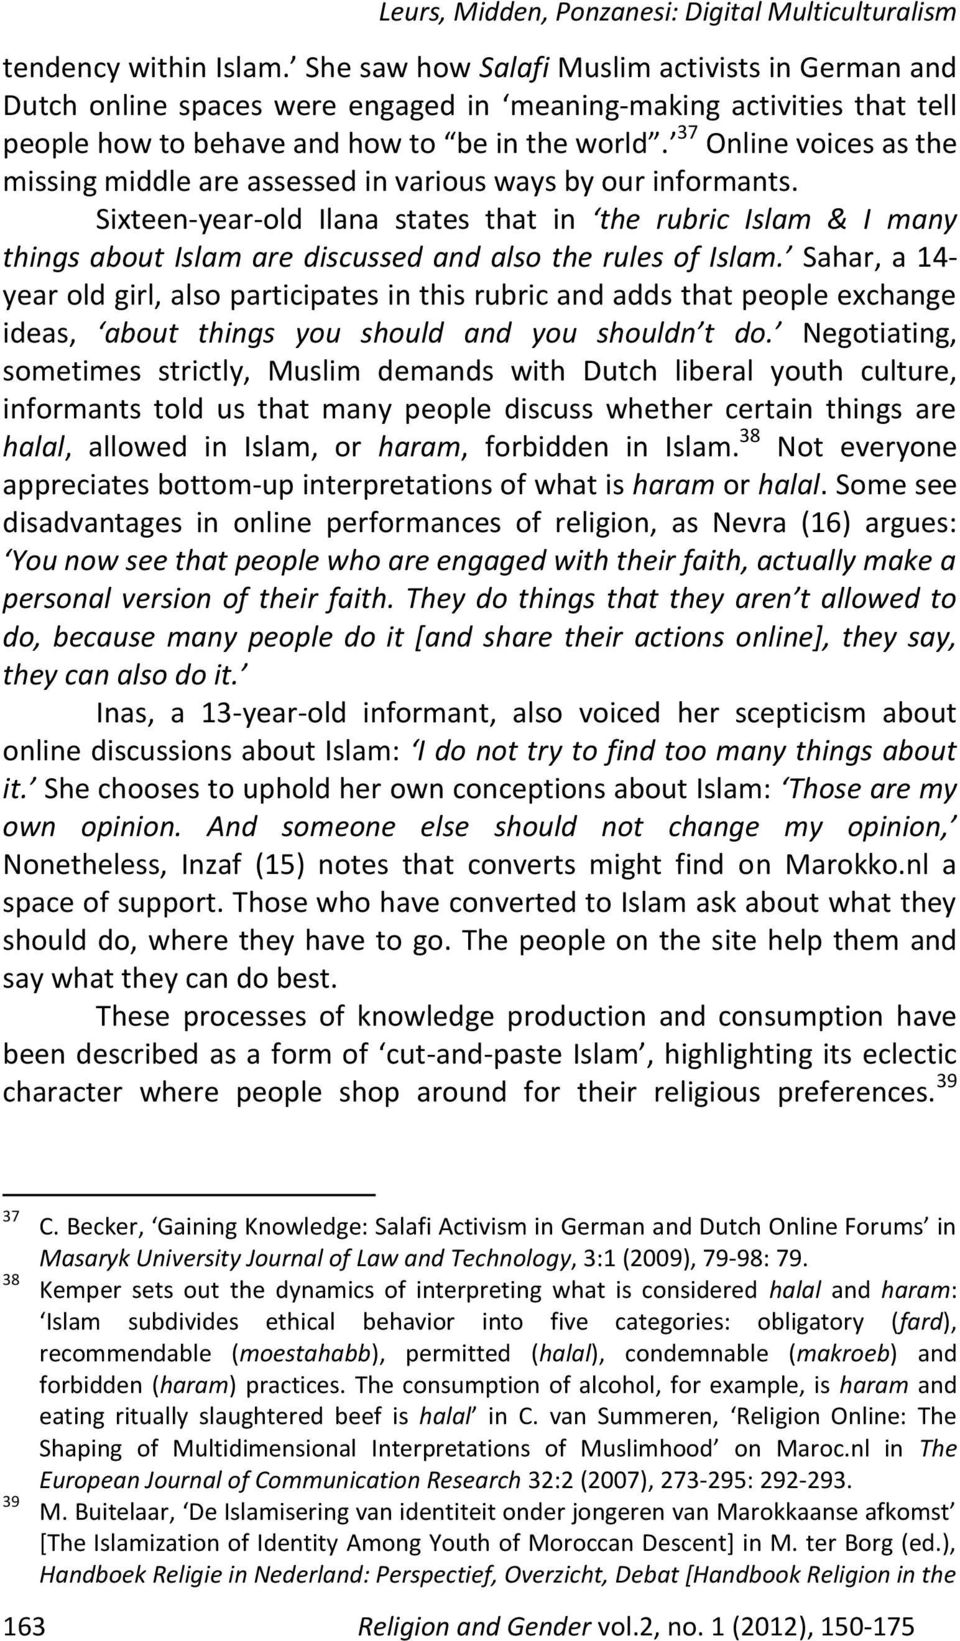 Sixteen-year-old Ilana states that in the rubric Islam & I many things about Islam are discussed and also the rules of Islam.